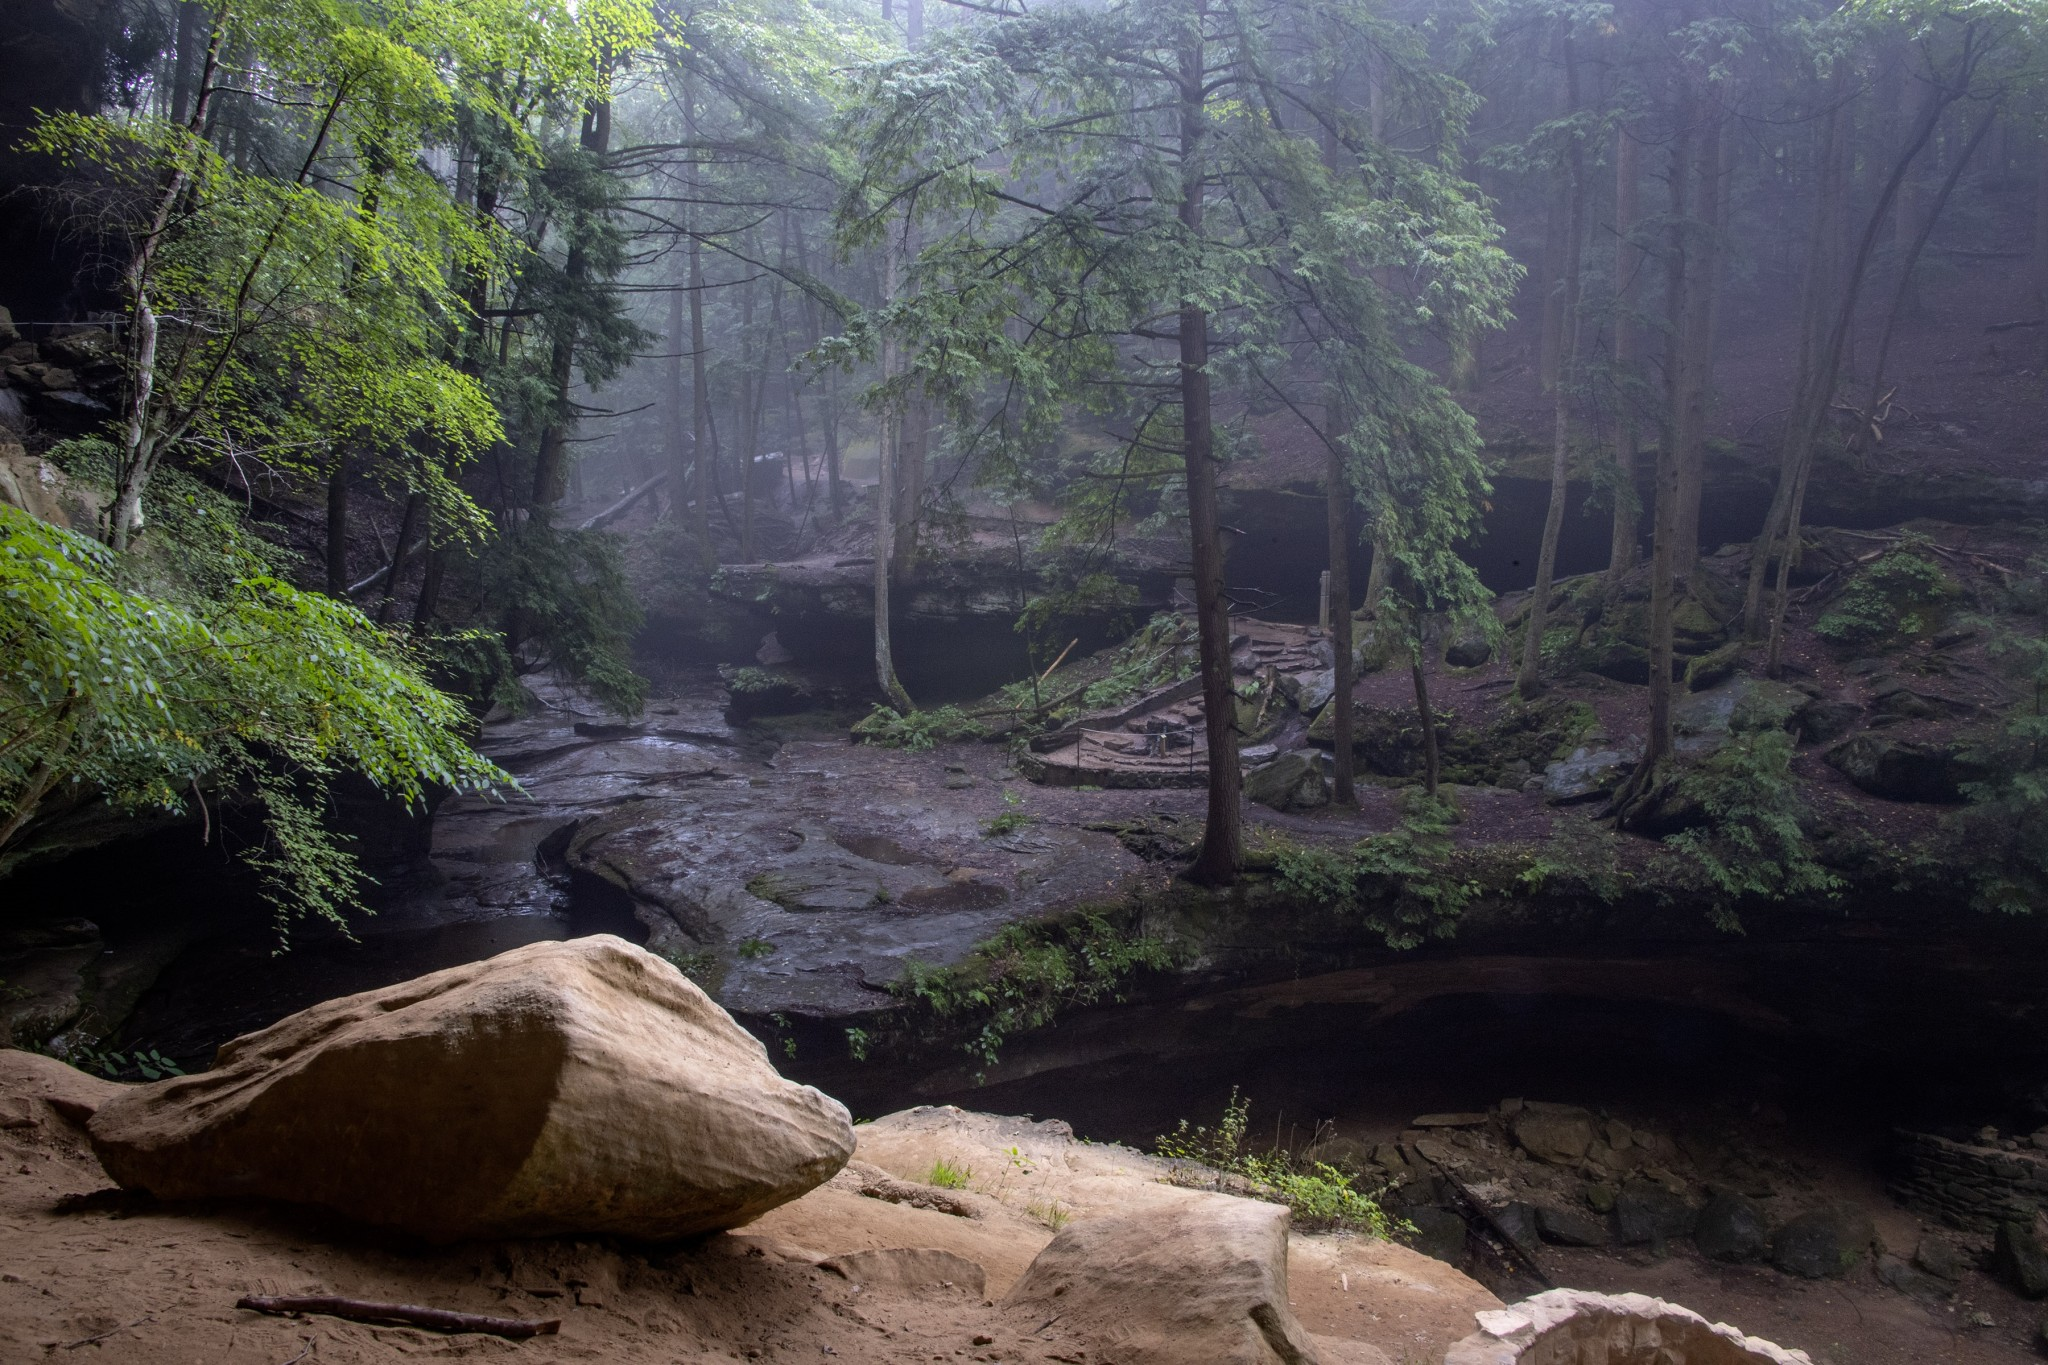 Fog settles into the gorge at Ash Cave, one of the popular scenic sites in the Hocking Hills State Park. As part of the effort to make the parks safer for visitors the two-way trail to and from Ash Cave has had a return loop added and the trail converted to one-way travel. The change minimizes contact with other visitors. Many of the park's one way trails have been modified with a return loop so they are one-way. (Photo by Art  Weber)